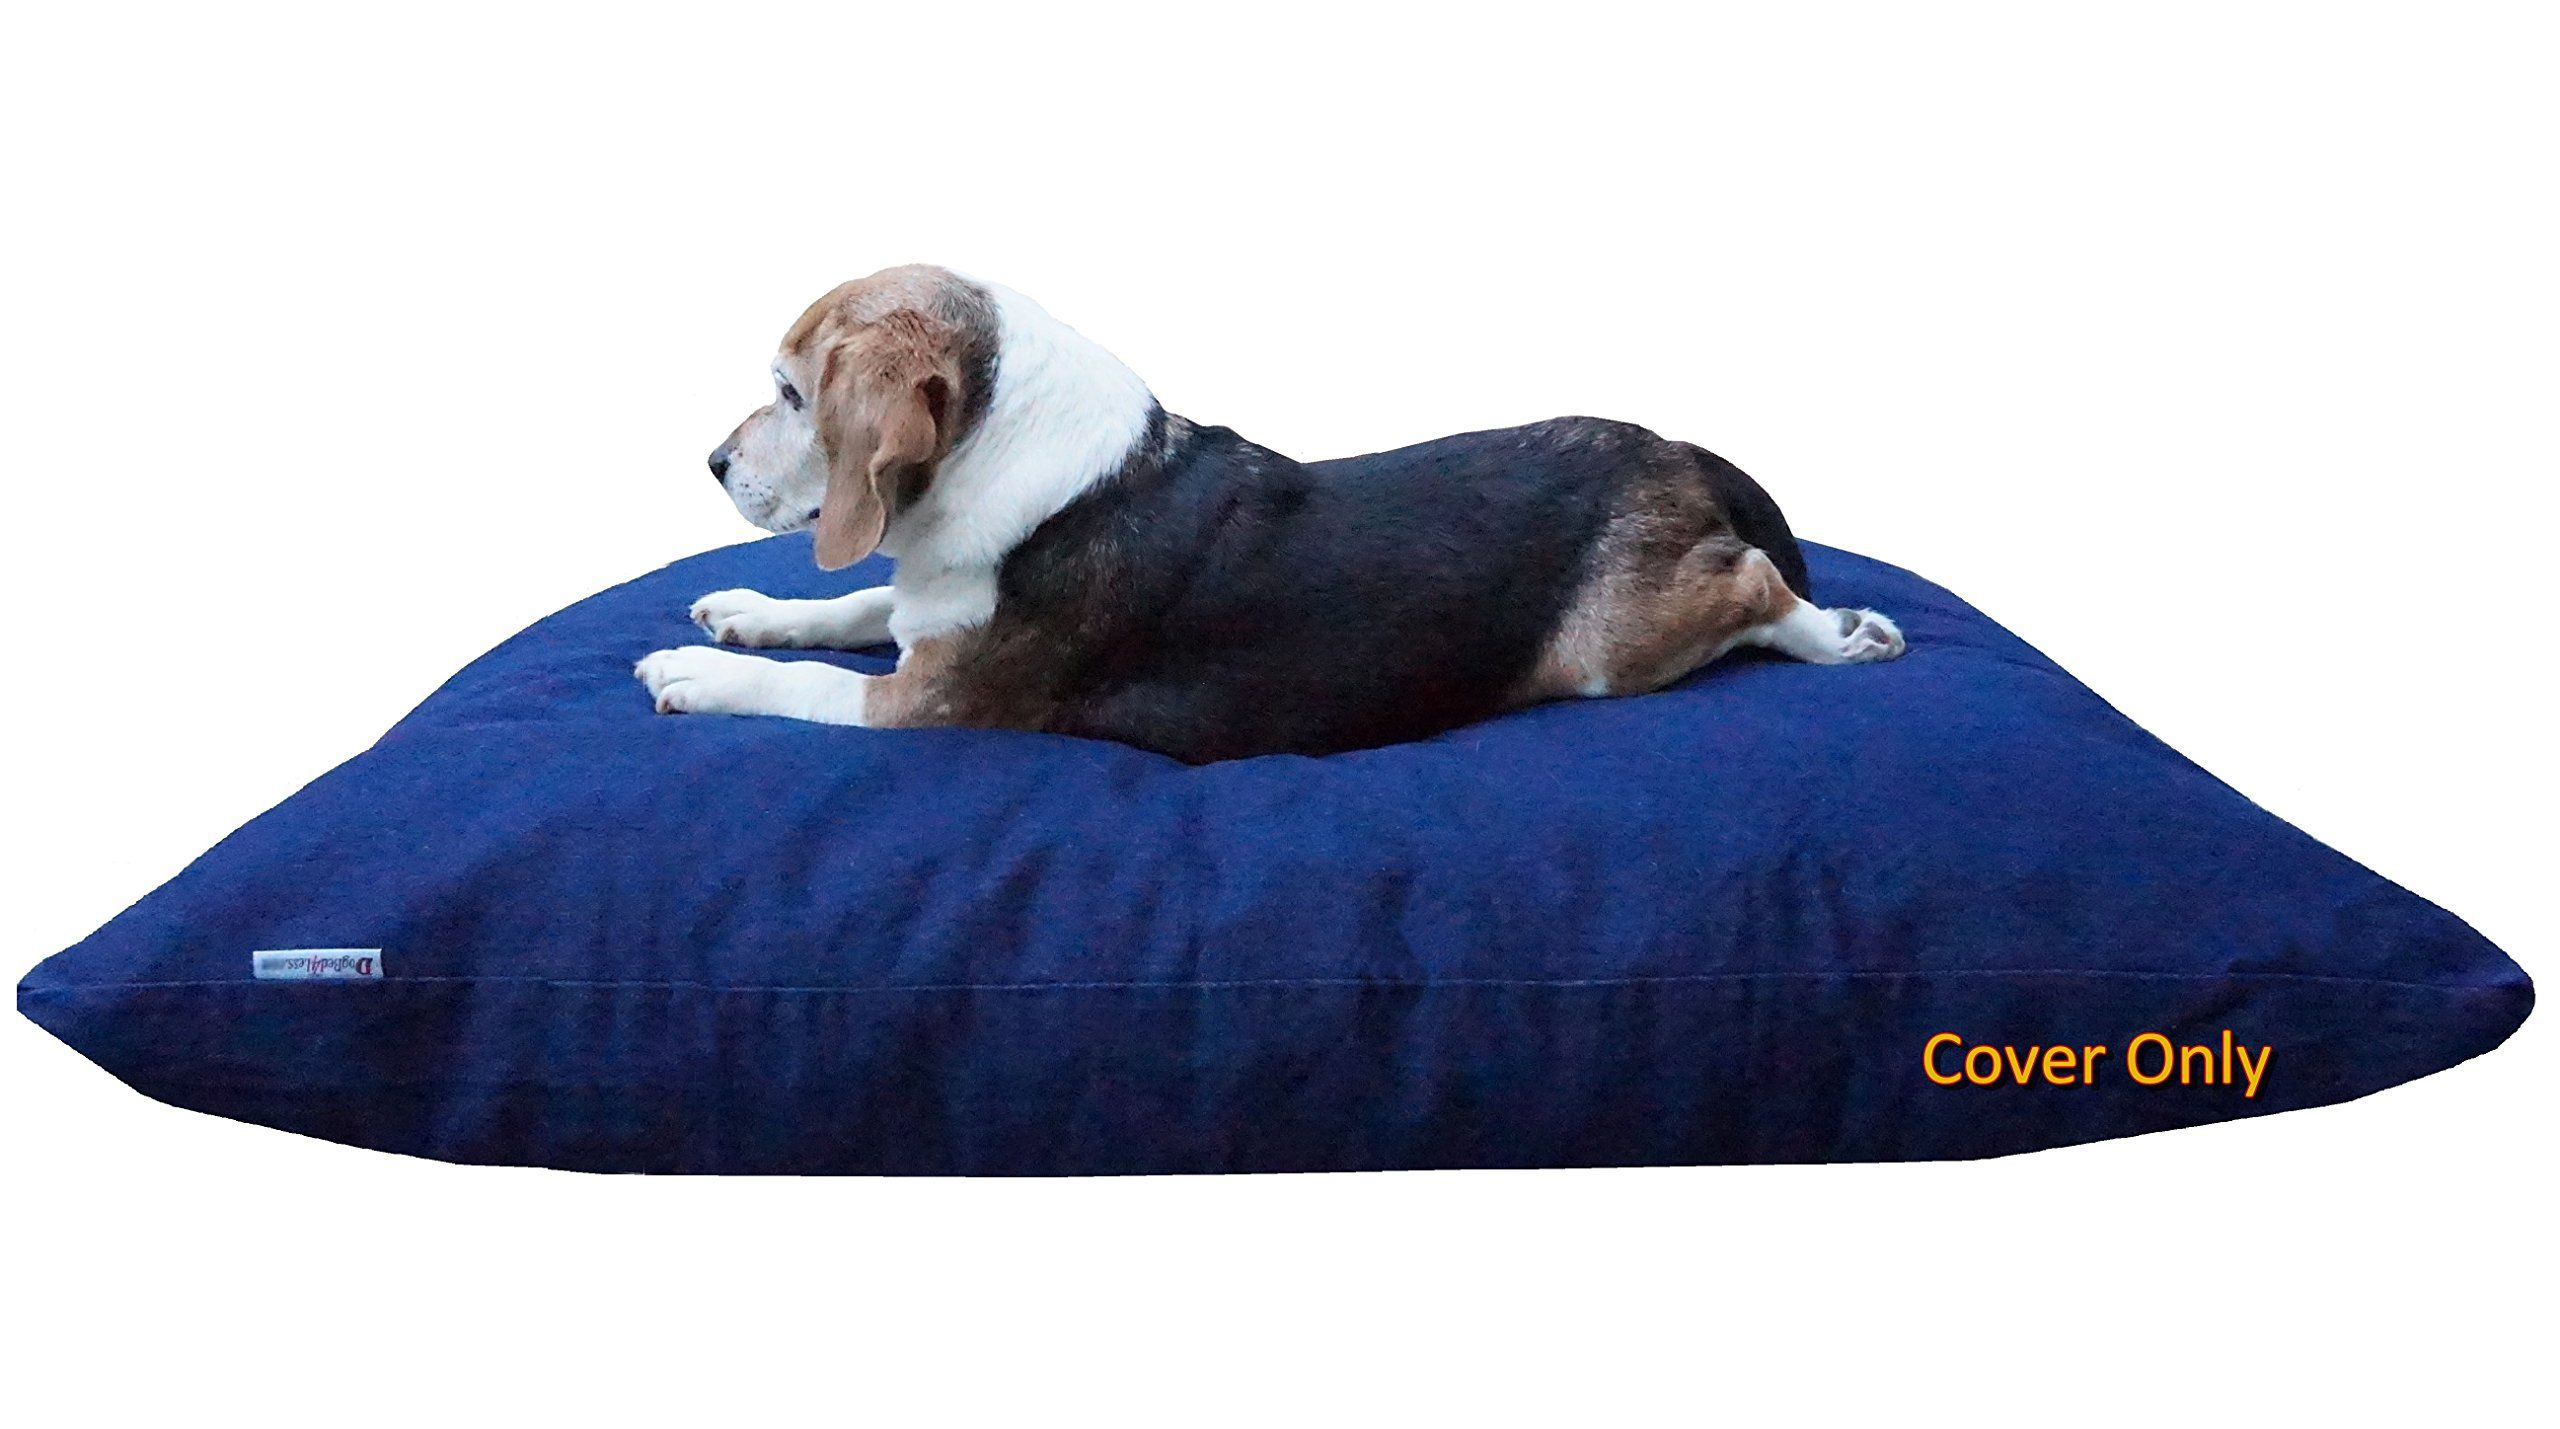 Dogbed4less DIY Do It Yourself Pet Pillow 2 Covers Pet